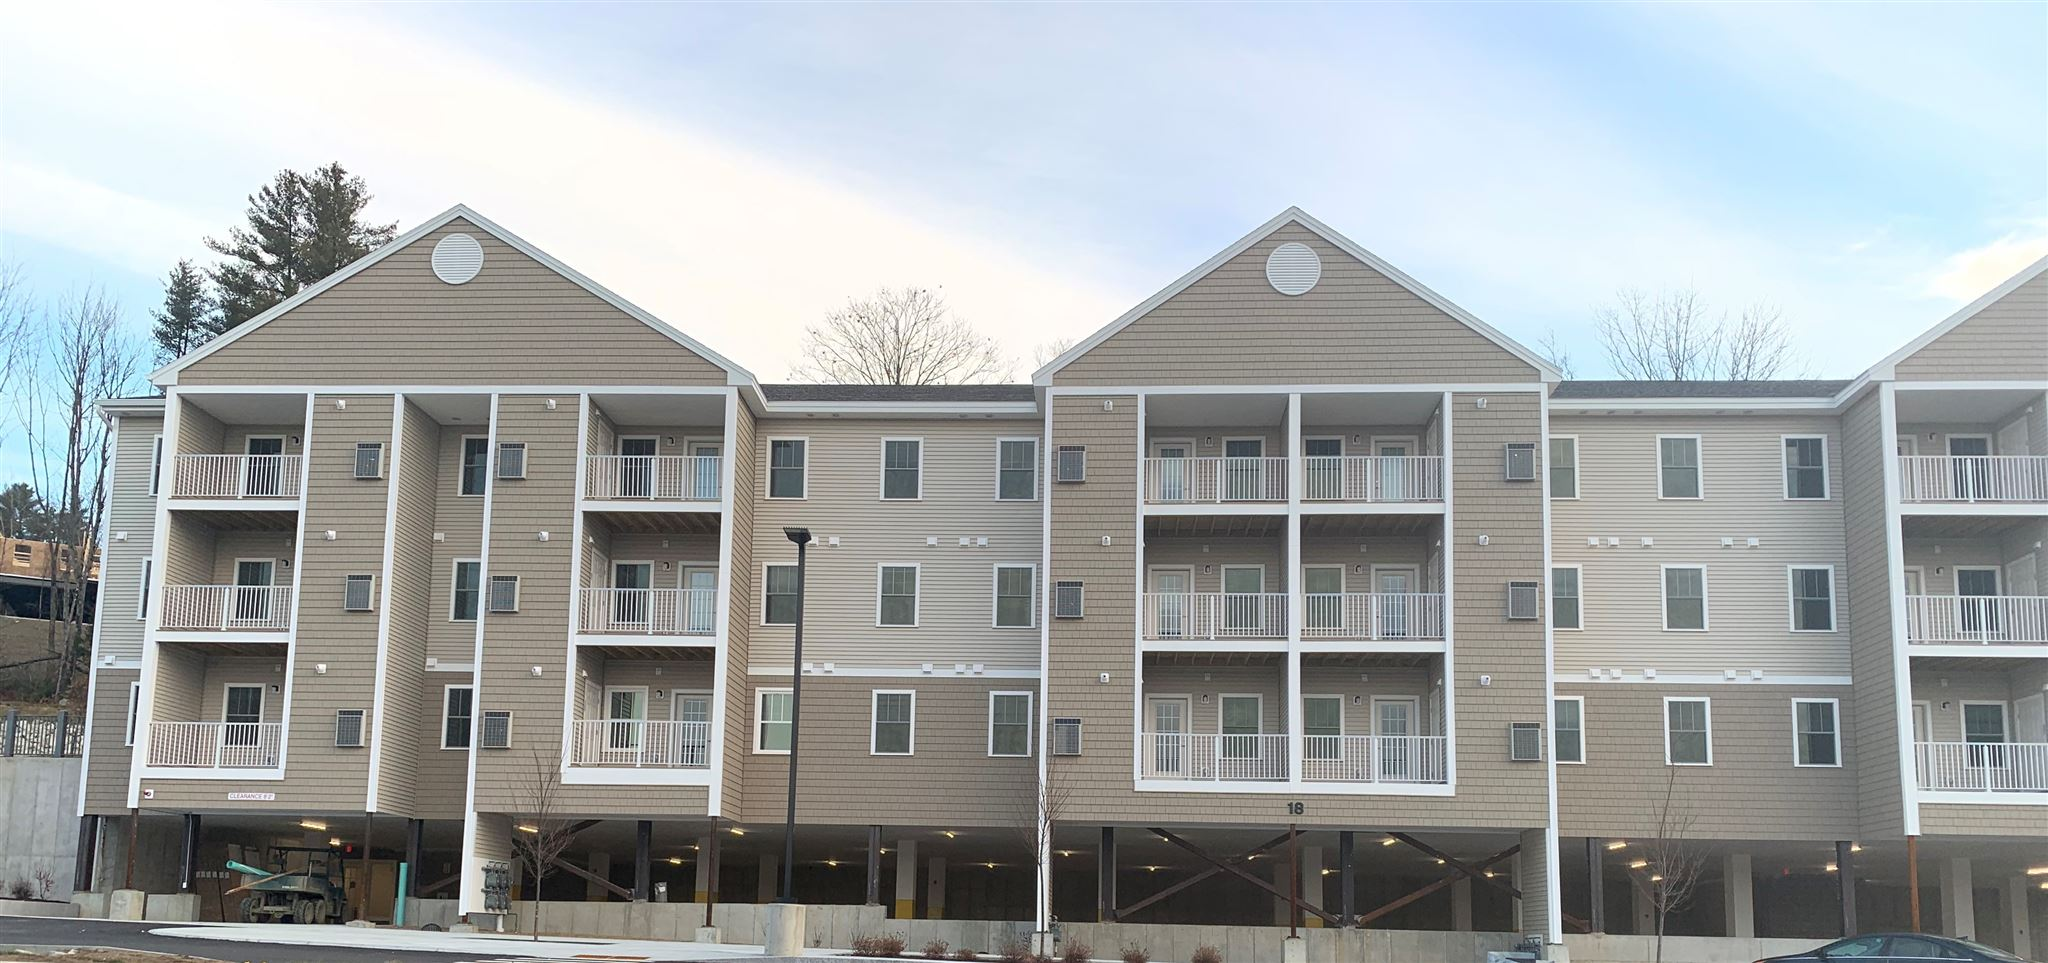 LEBANON NH Lebanon_NH for sale $Furnished Apartment For Lease: $2,100  with Lease Term